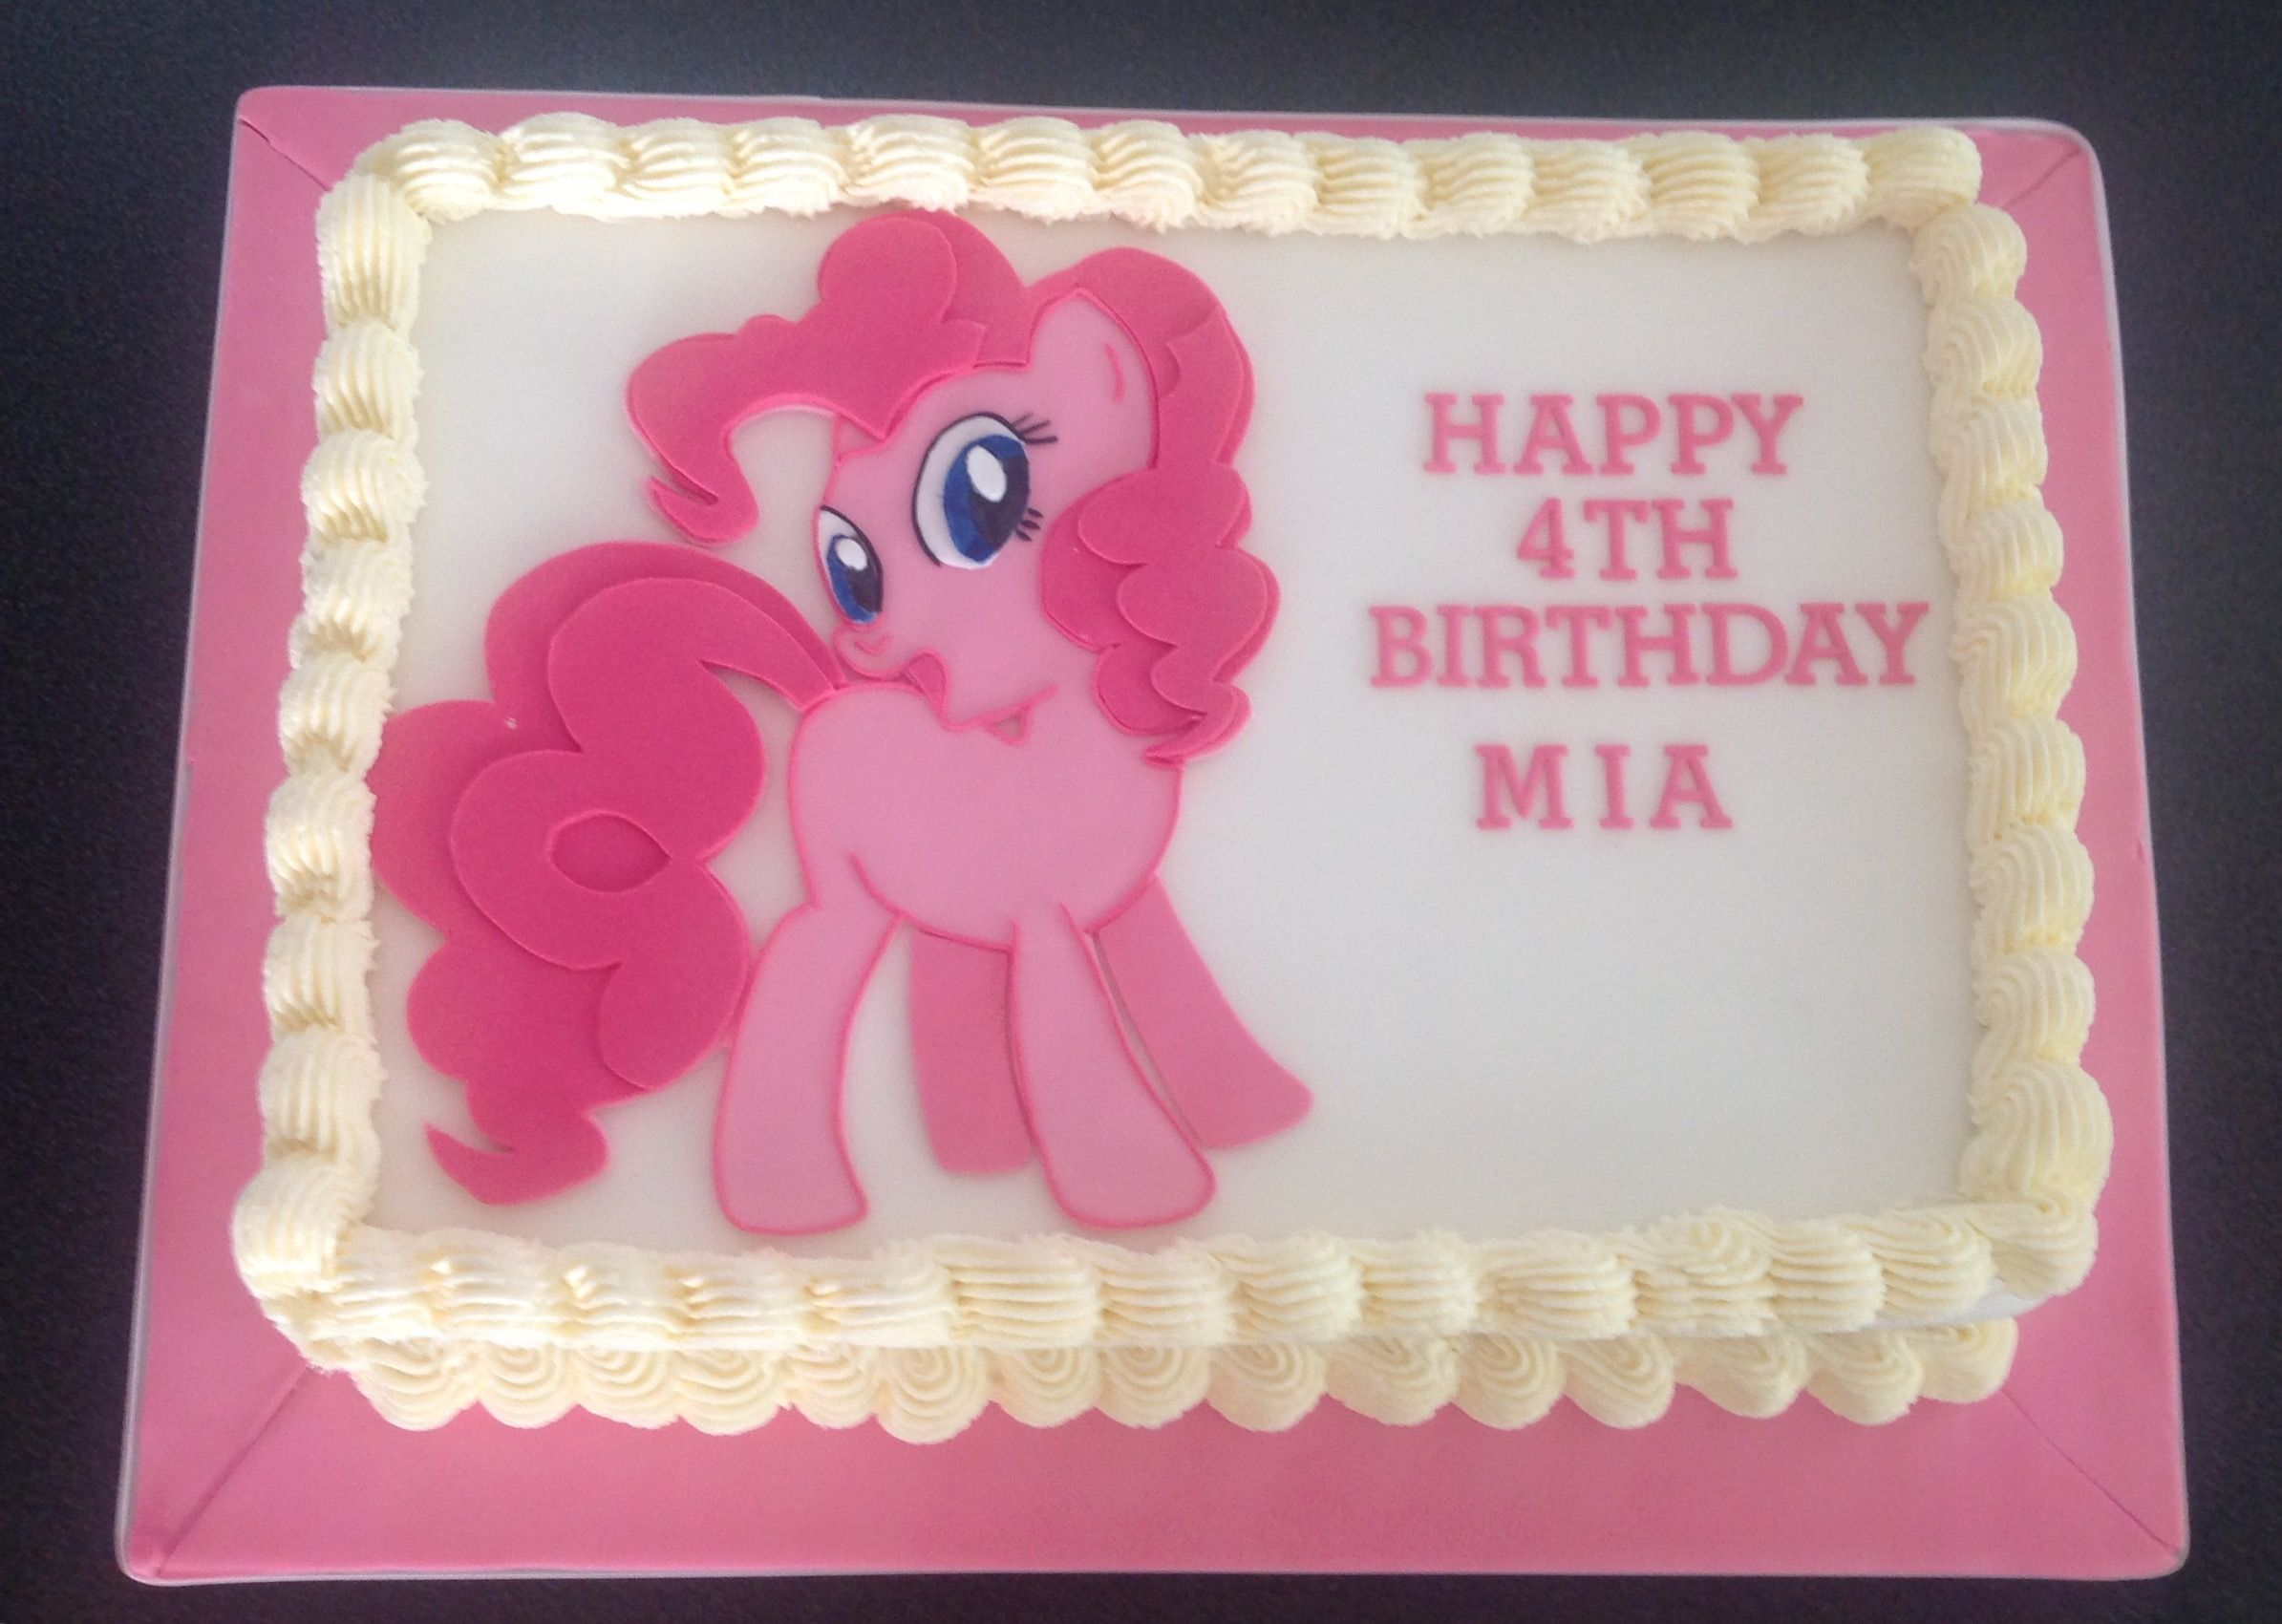 Fantastic Pin By Candace Ruffin On Emily My Little Pony Birthday Party Funny Birthday Cards Online Kookostrdamsfinfo